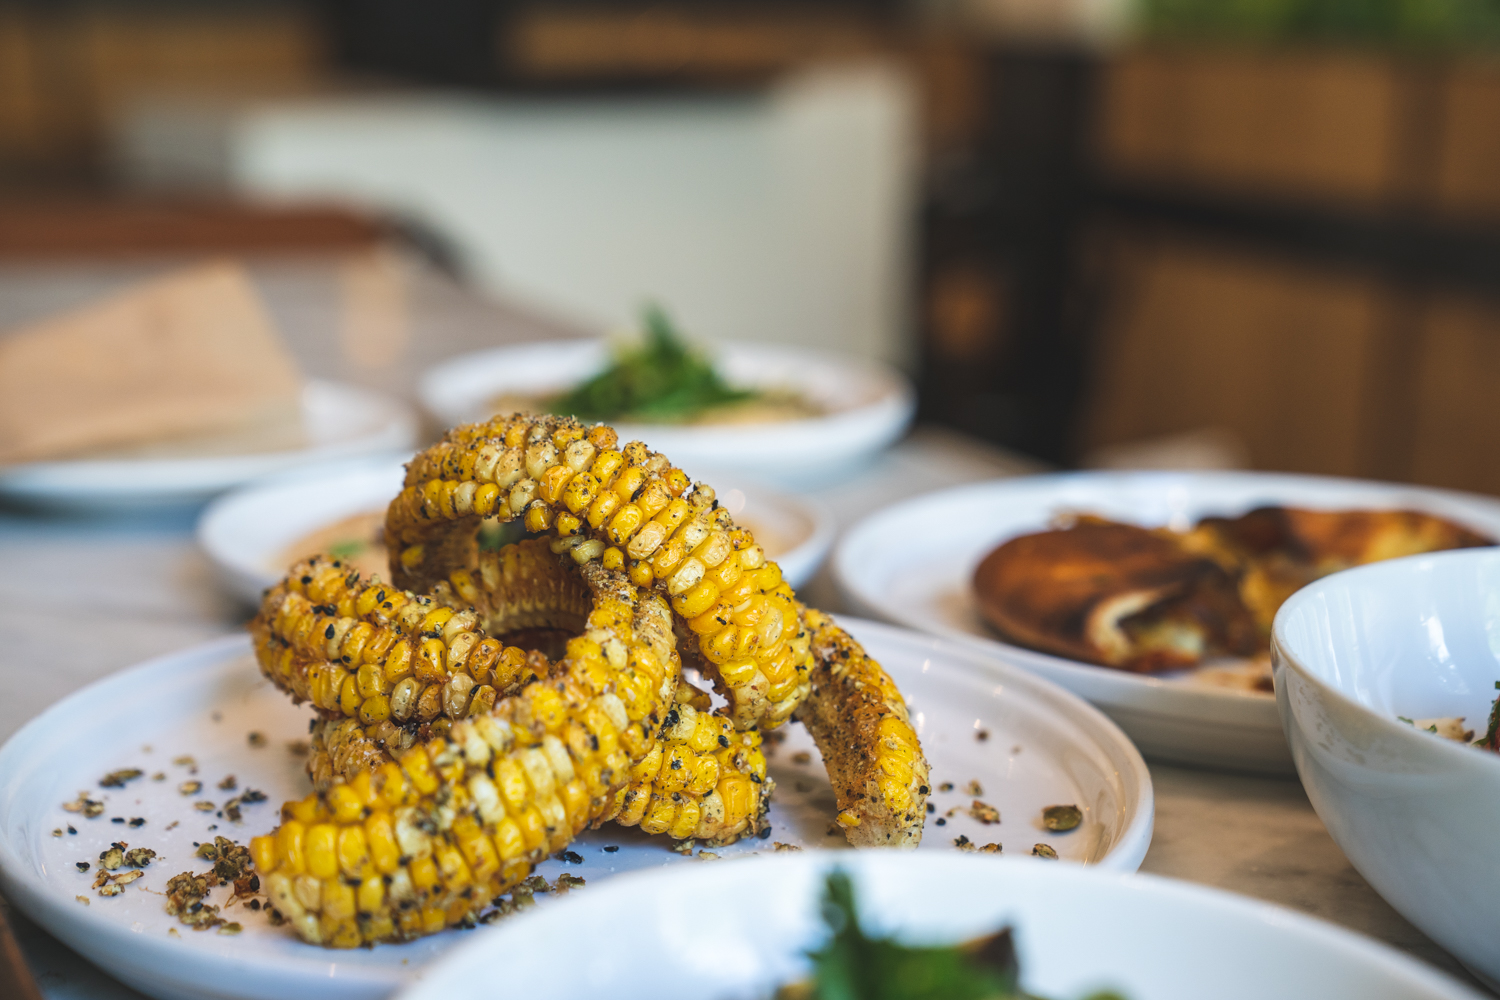 A plate of corn ribs sits next to various bowls and plates at Lil Shalom in Portland, Oregon